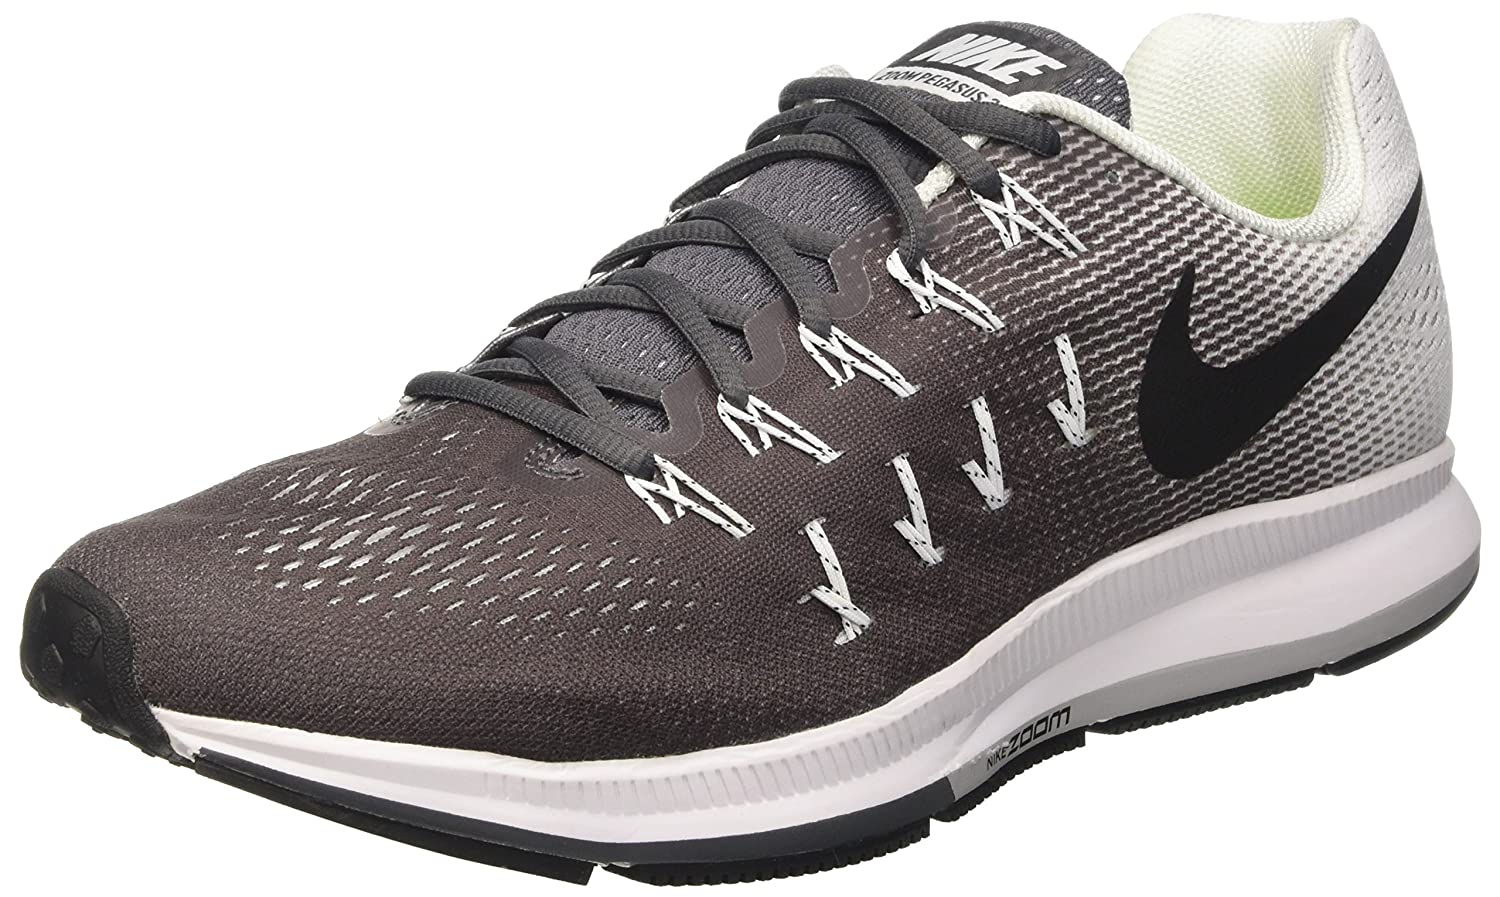 outlet store b9bb5 4162d Nike Air Zoom Pegasus 33, Mens Training White MainApps Amazon.co.uk  Shoes  Bags